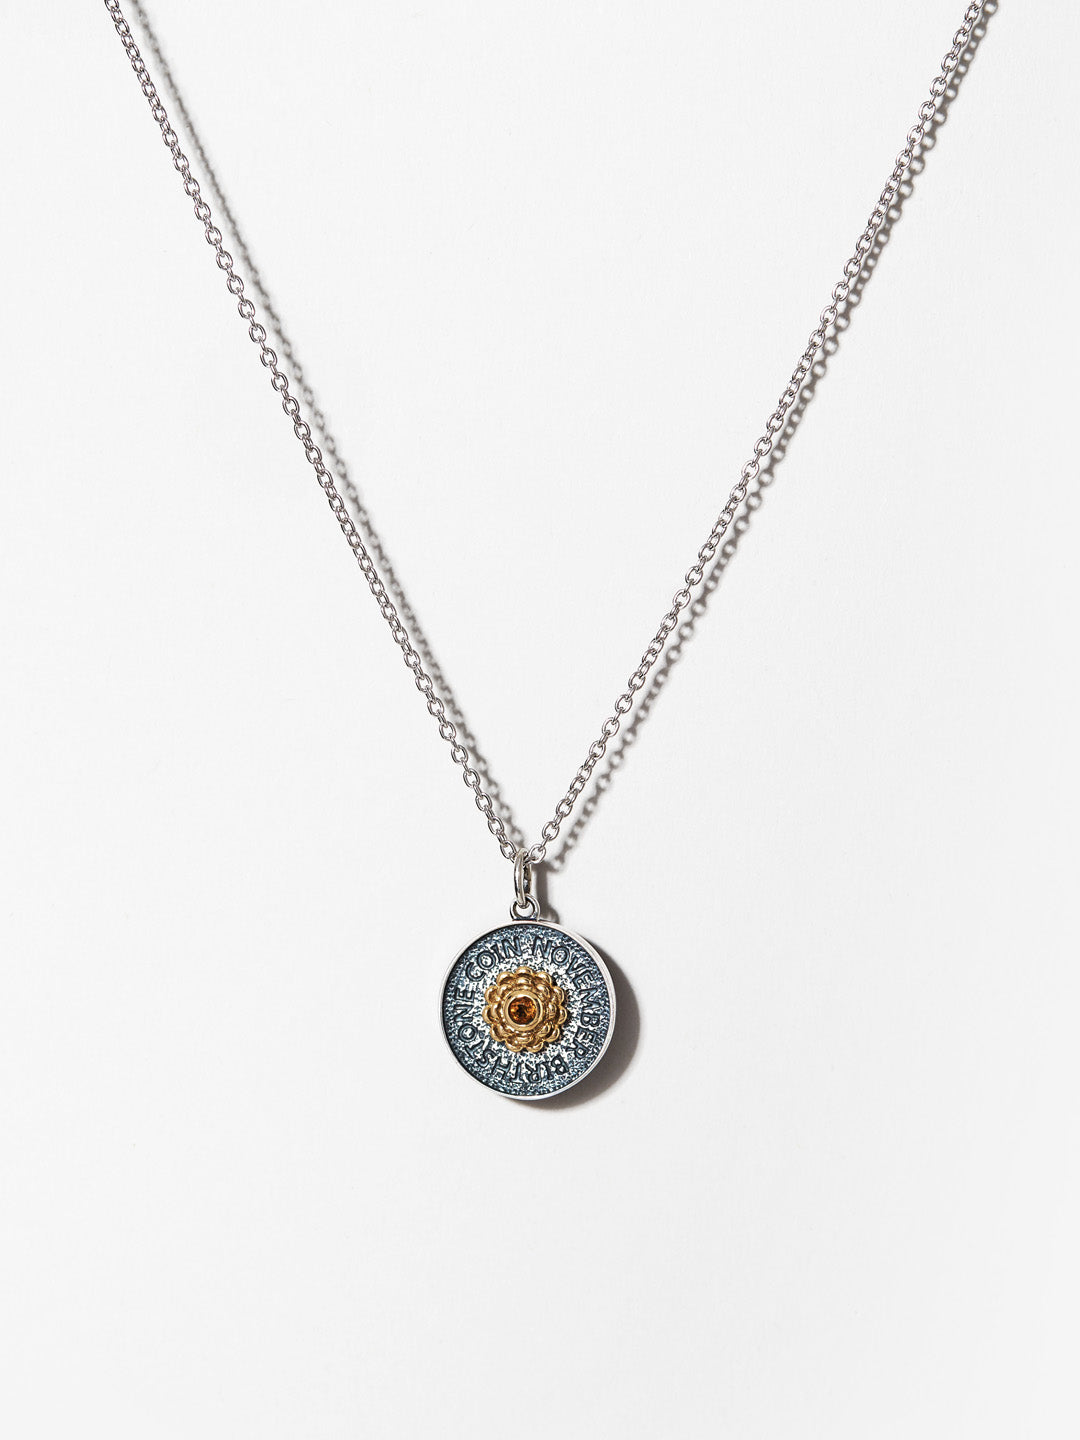 Ana Luisa Necklaces Pendant Necklace Birthstone Necklace Citrine November Silver